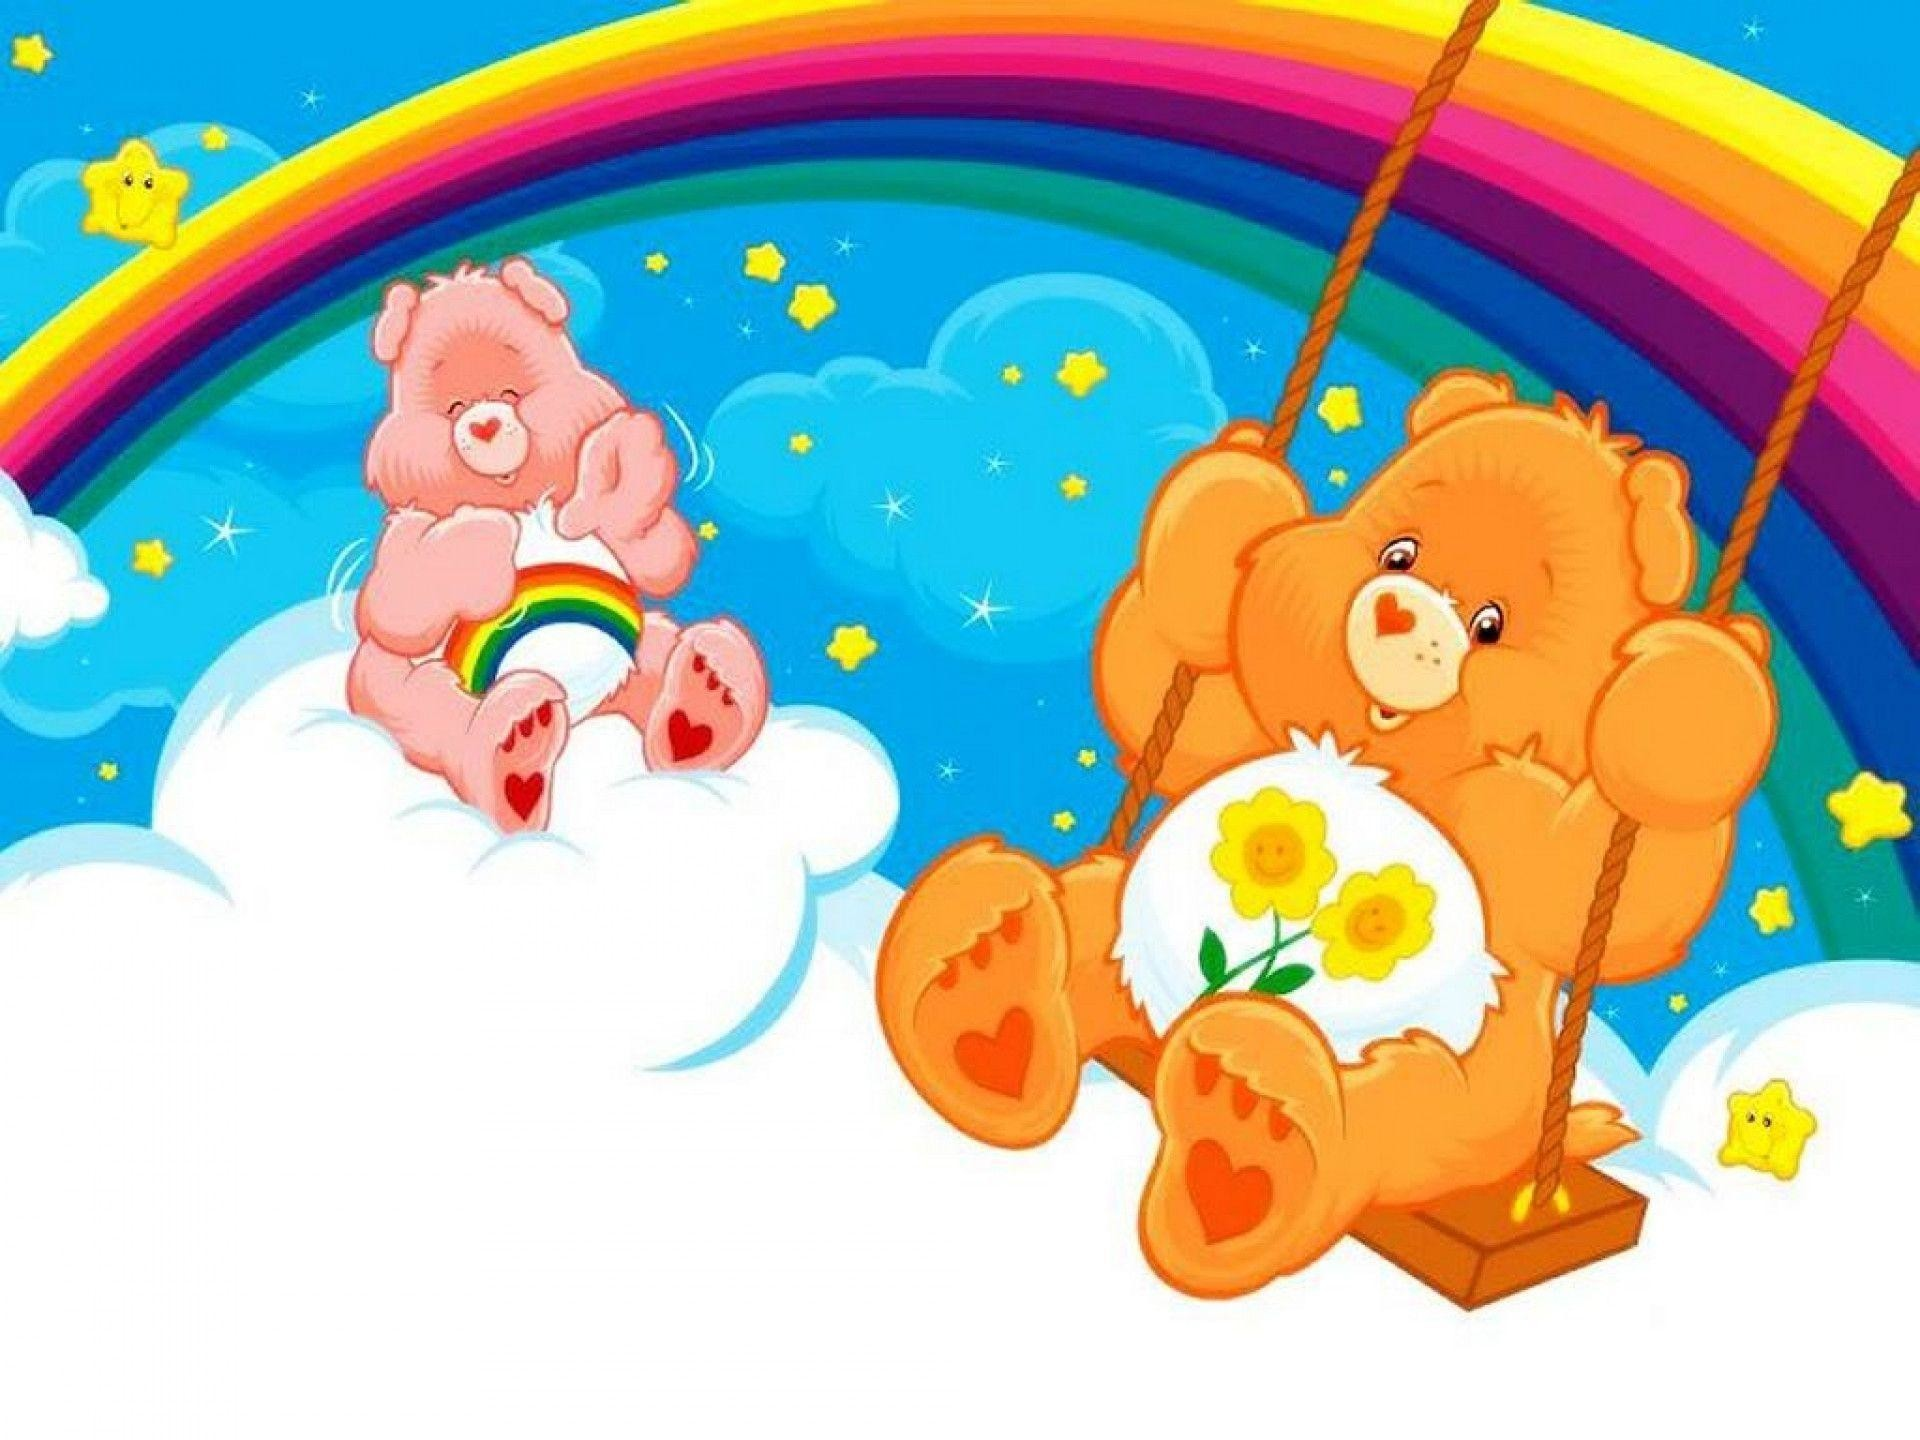 1920x1440 Care bears wallpaper background theme desktop